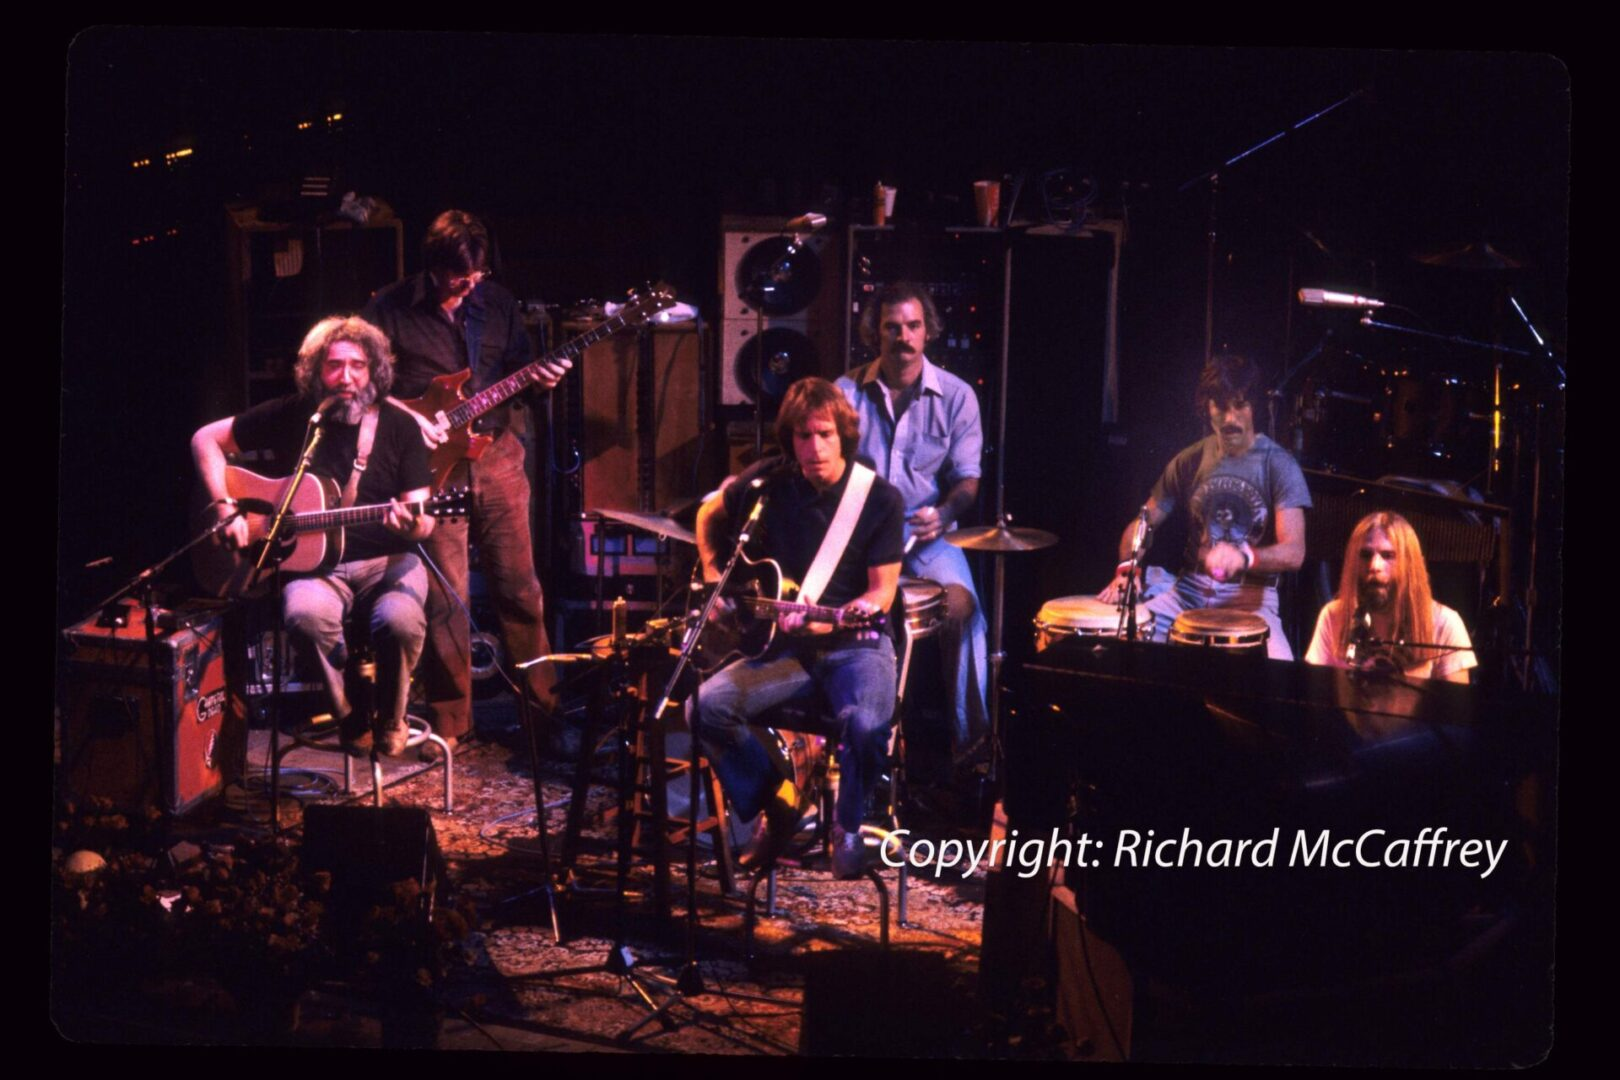 Grateful Dead; Jerry Garcia, Phil Lesh, Bob Weir, Bill Kreutzmann, Mickey Hart, Brent Mydland; Warfield Theatre; SF CA 1980